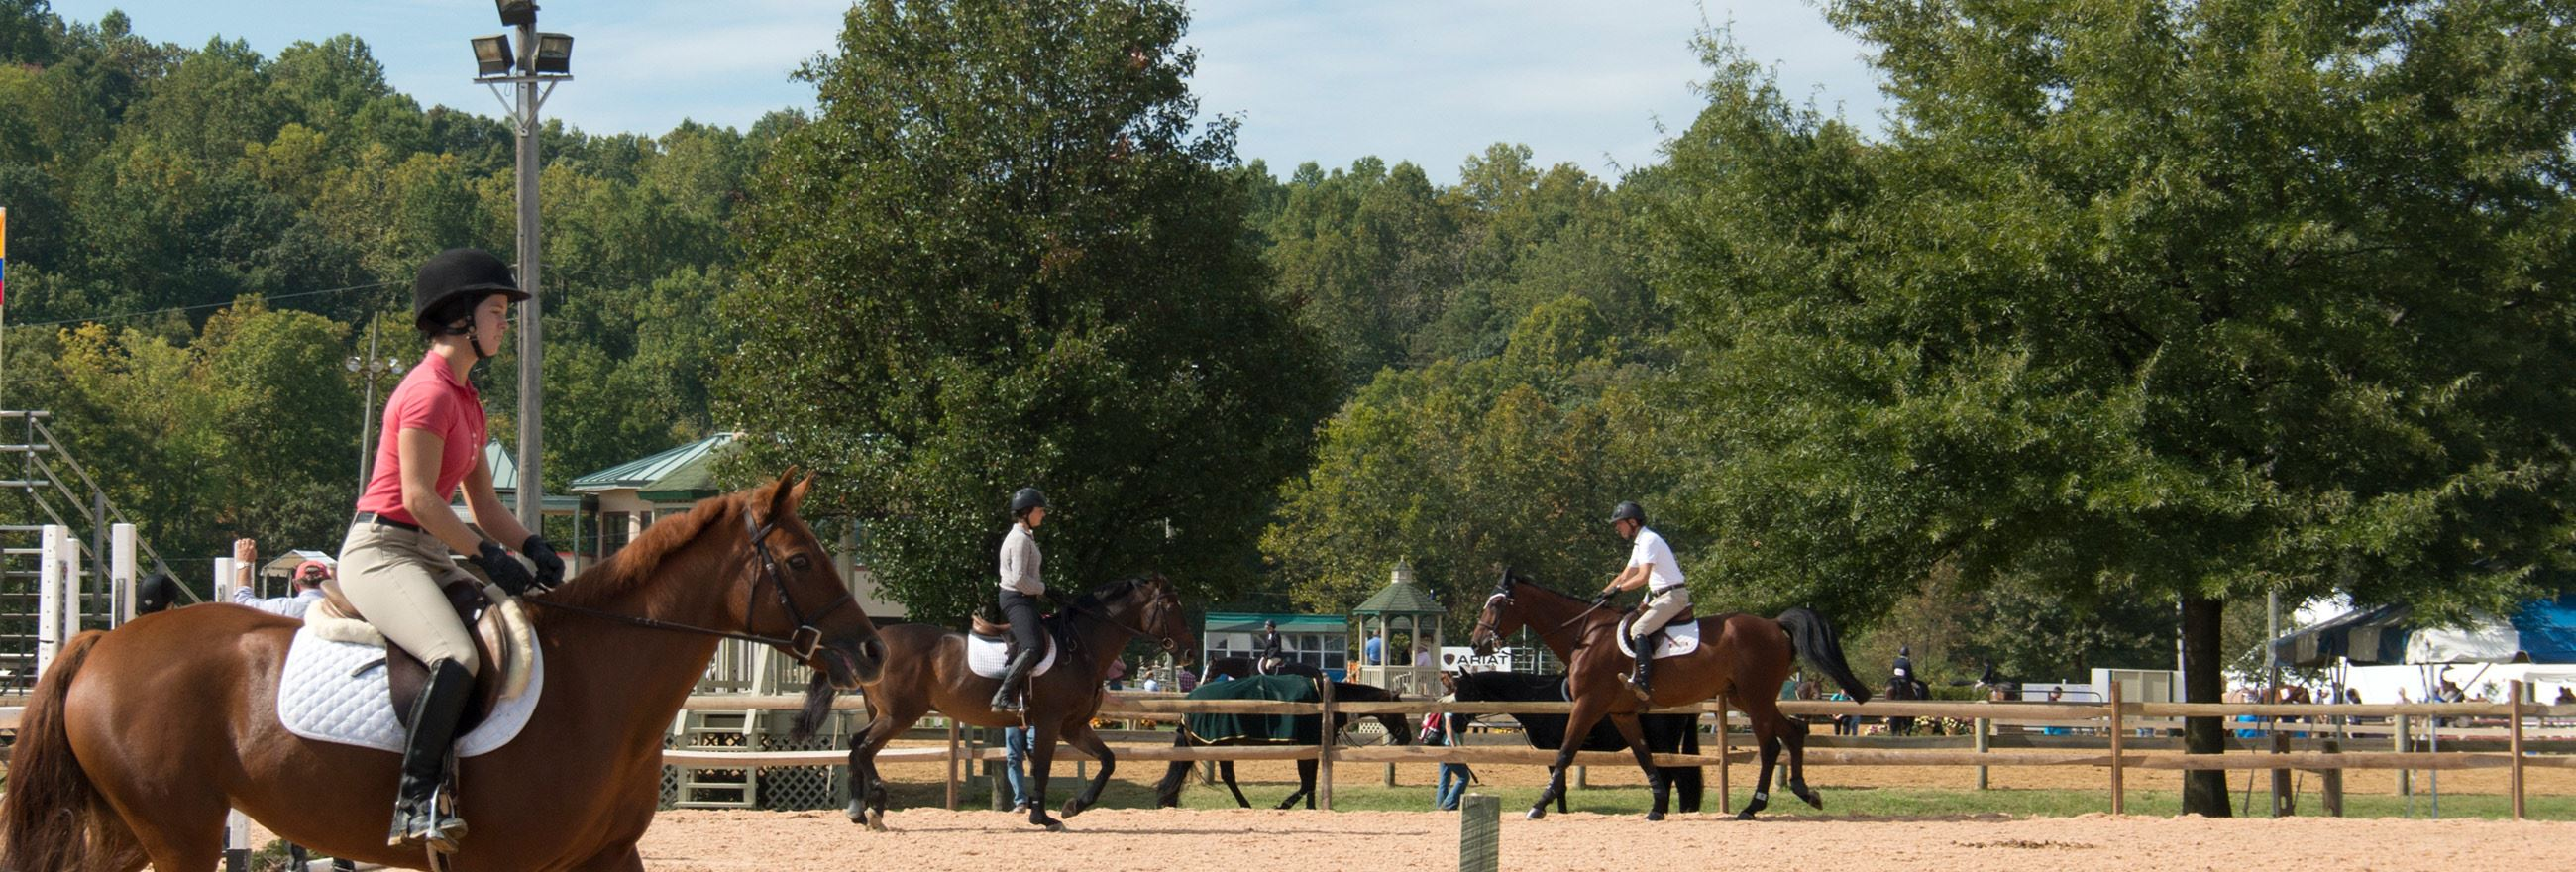 Show Place Arena Equestrian Center MNCPPC MD - 12 equestrian places in the us